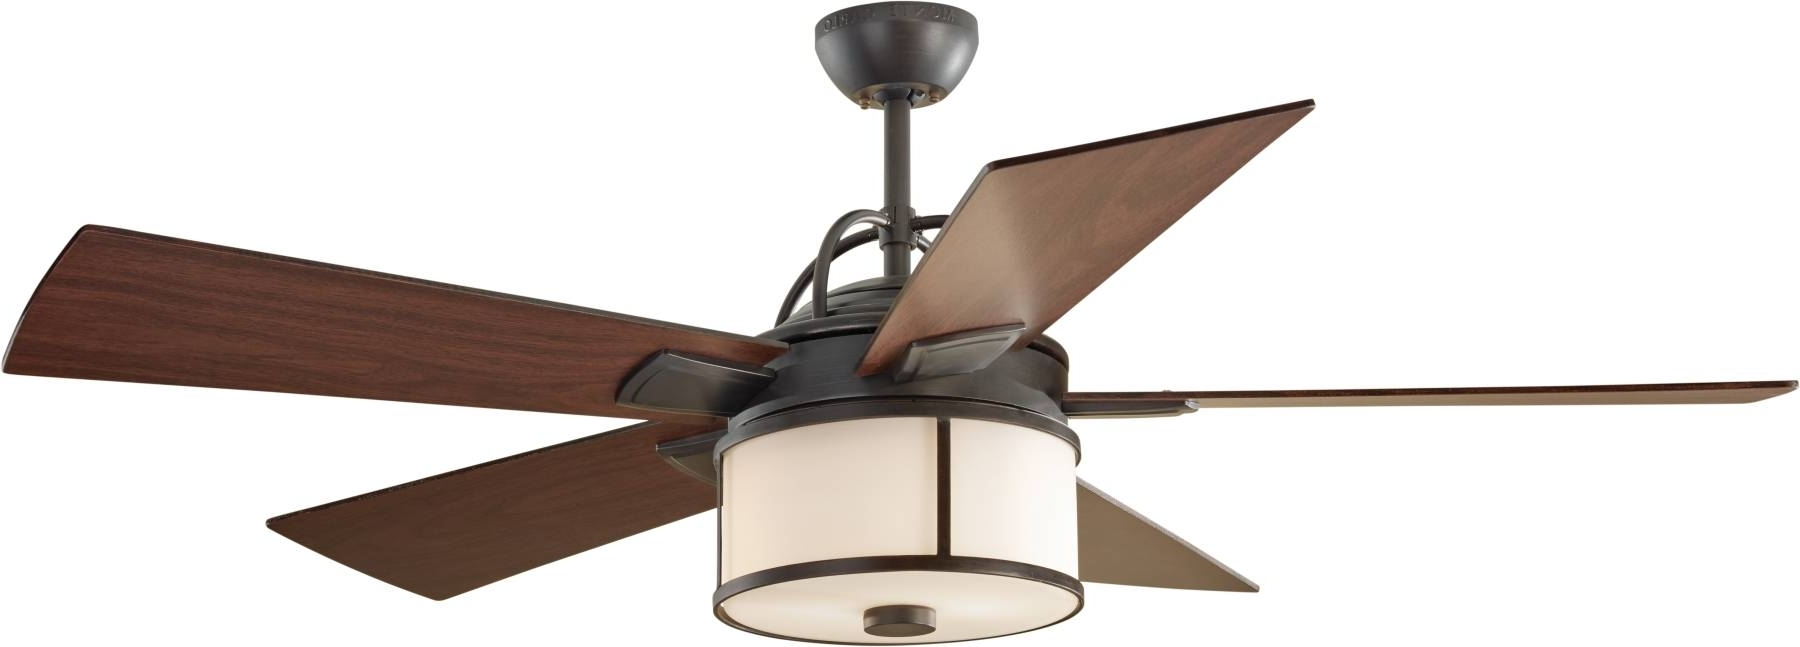 Replacement Globes For Ceiling Fan – Pixball With Most Current Outdoor Ceiling Fans With Light Globes (View 15 of 20)